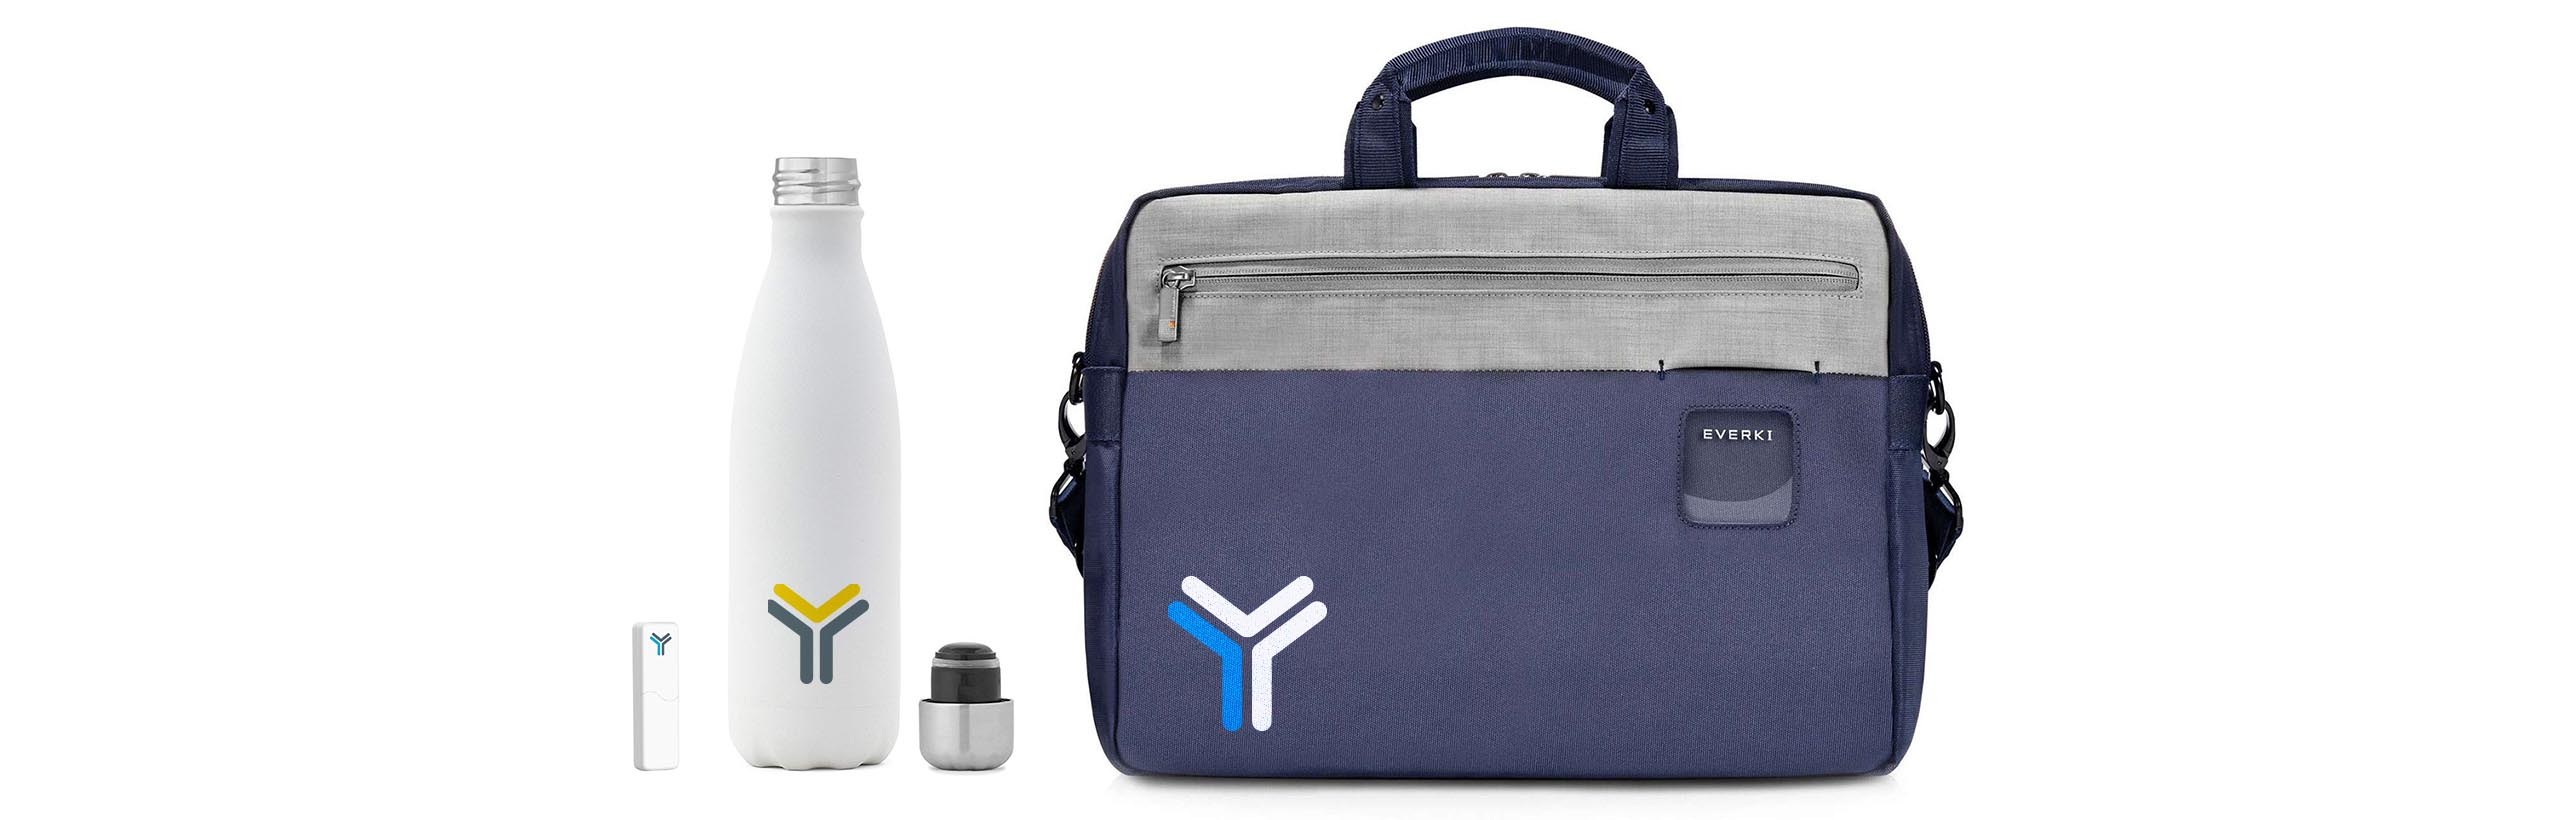 younity welcome pack